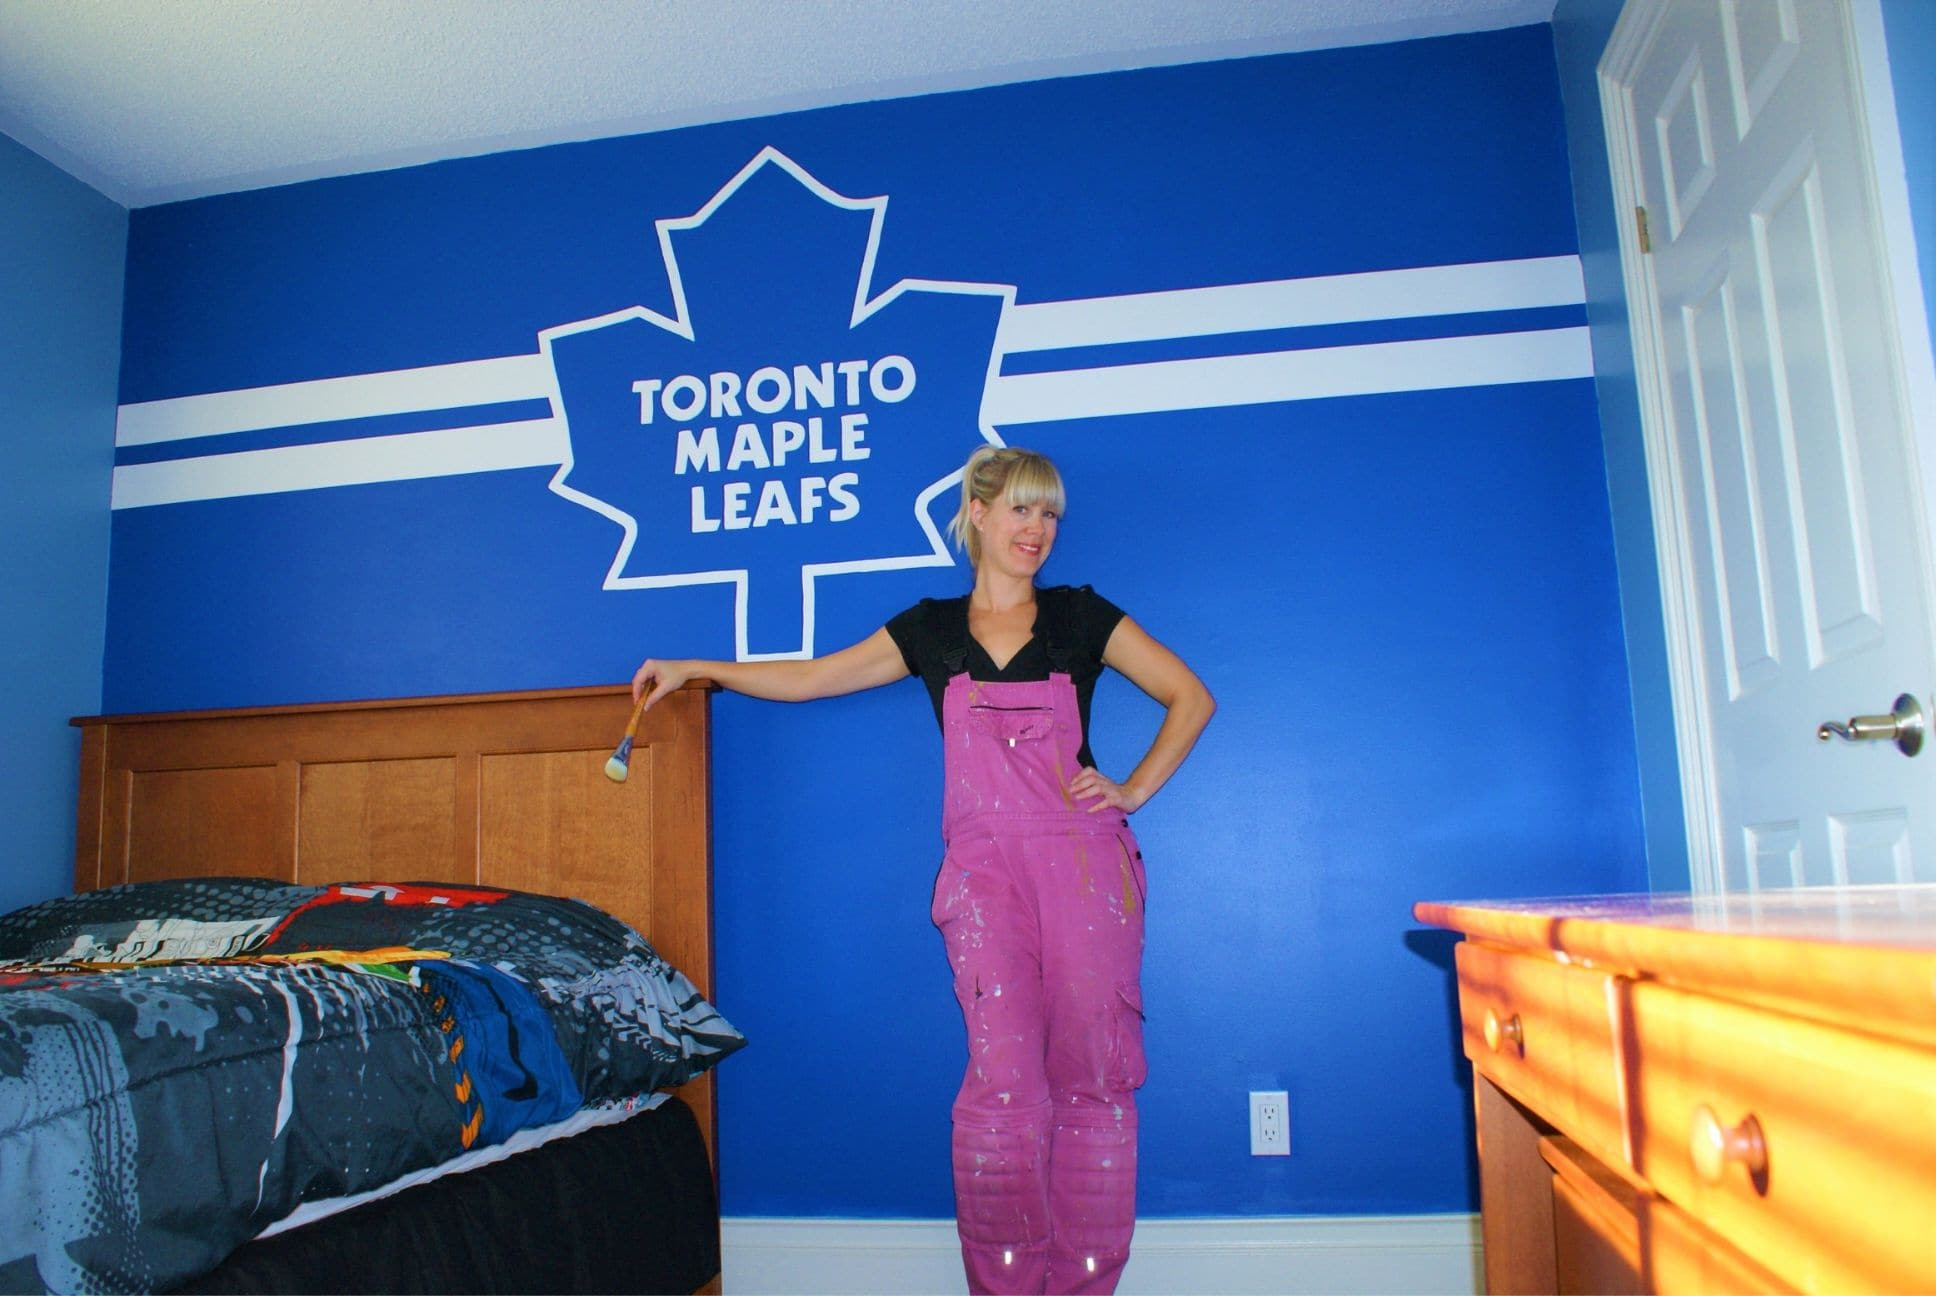 Toronto Maple Leafs Mural painted by Adrienne of AboutMurals.ca